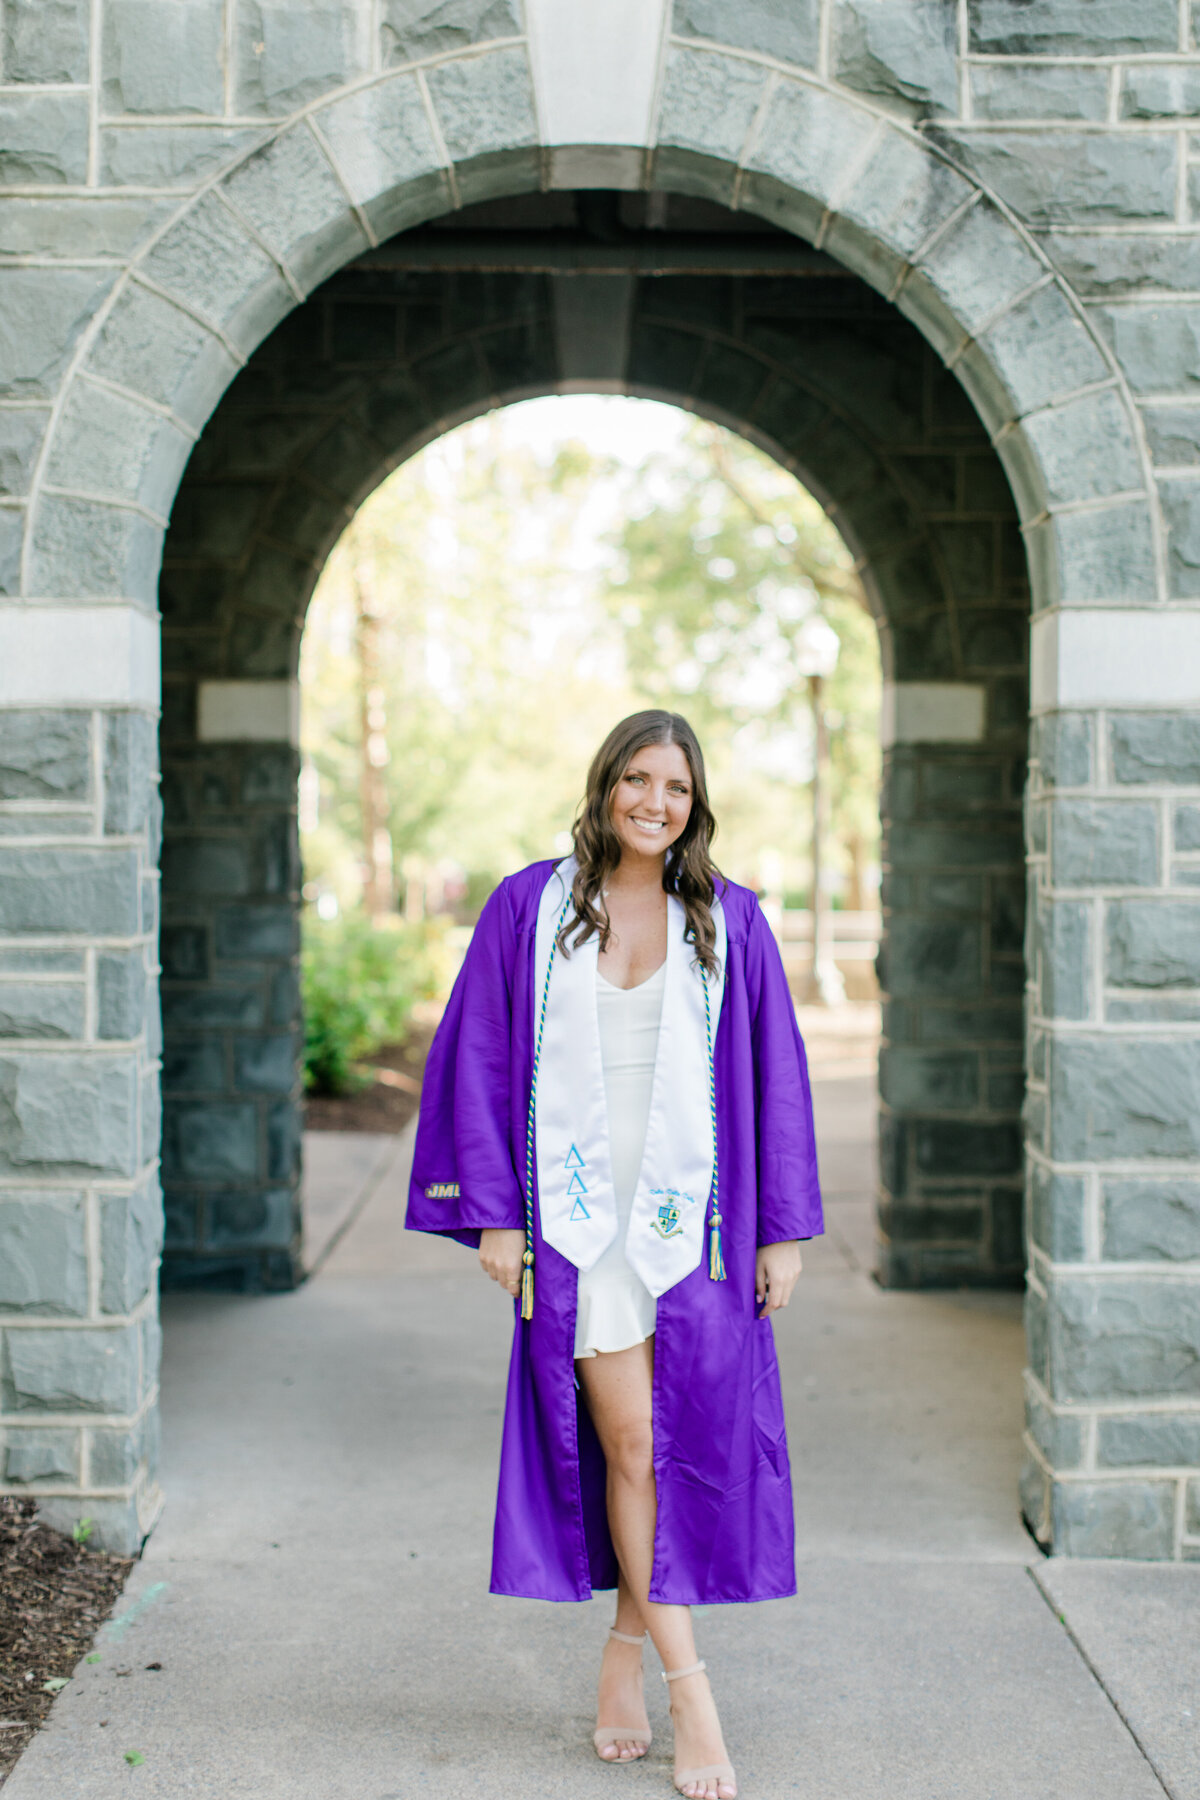 JMU_Senior_Graduation_Session_2020_Angelika_Johns_Photography-3631